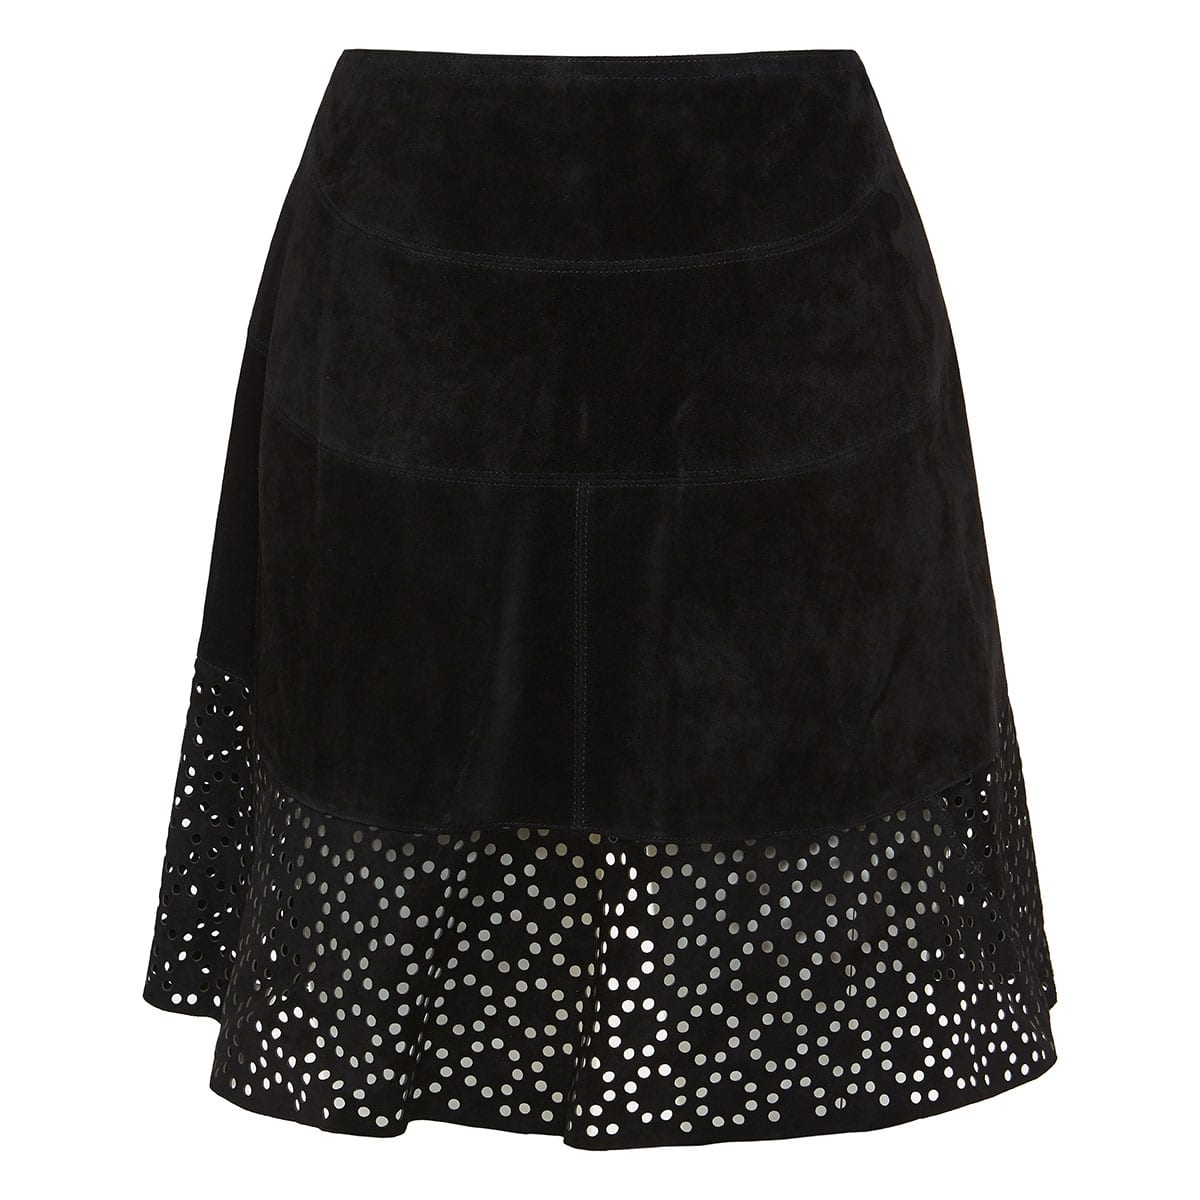 Laser-cut asymmetric suede skirt